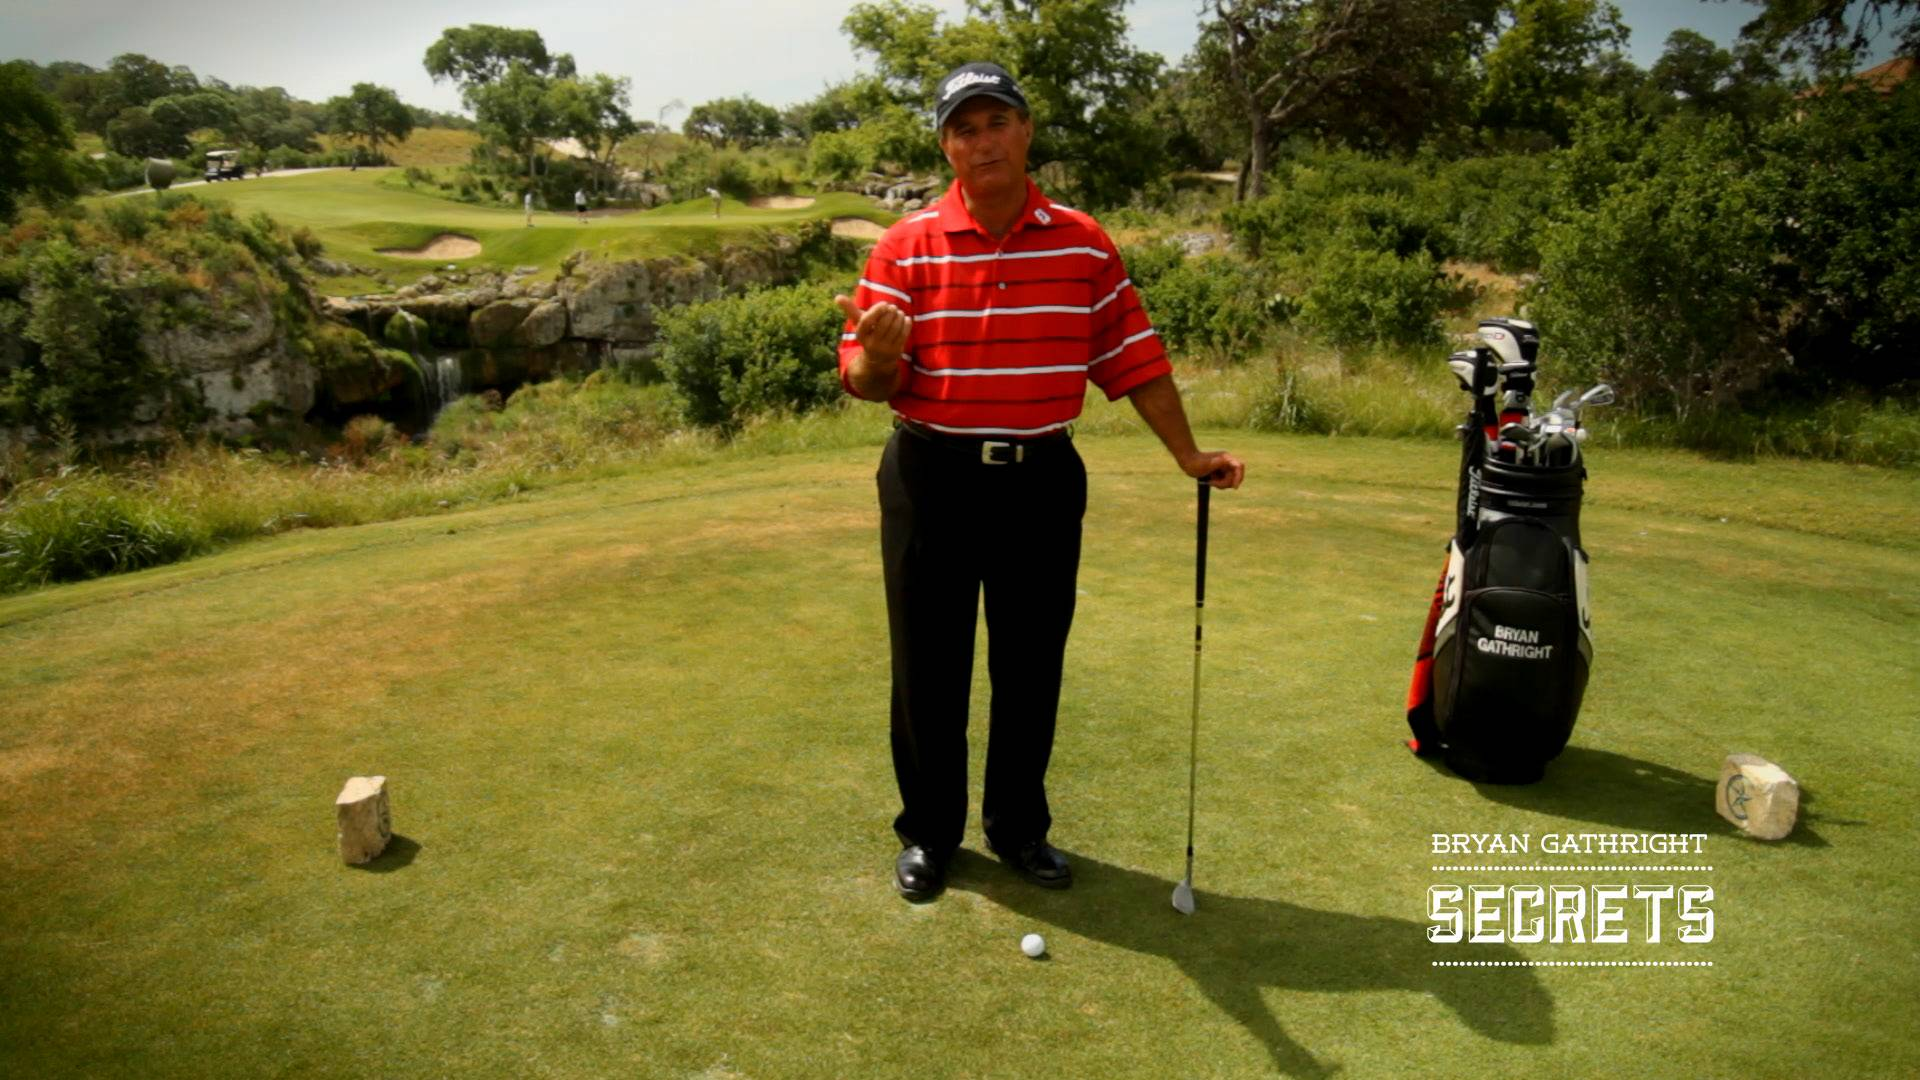 Secret #9 - Influence of Right Knee on Chipping